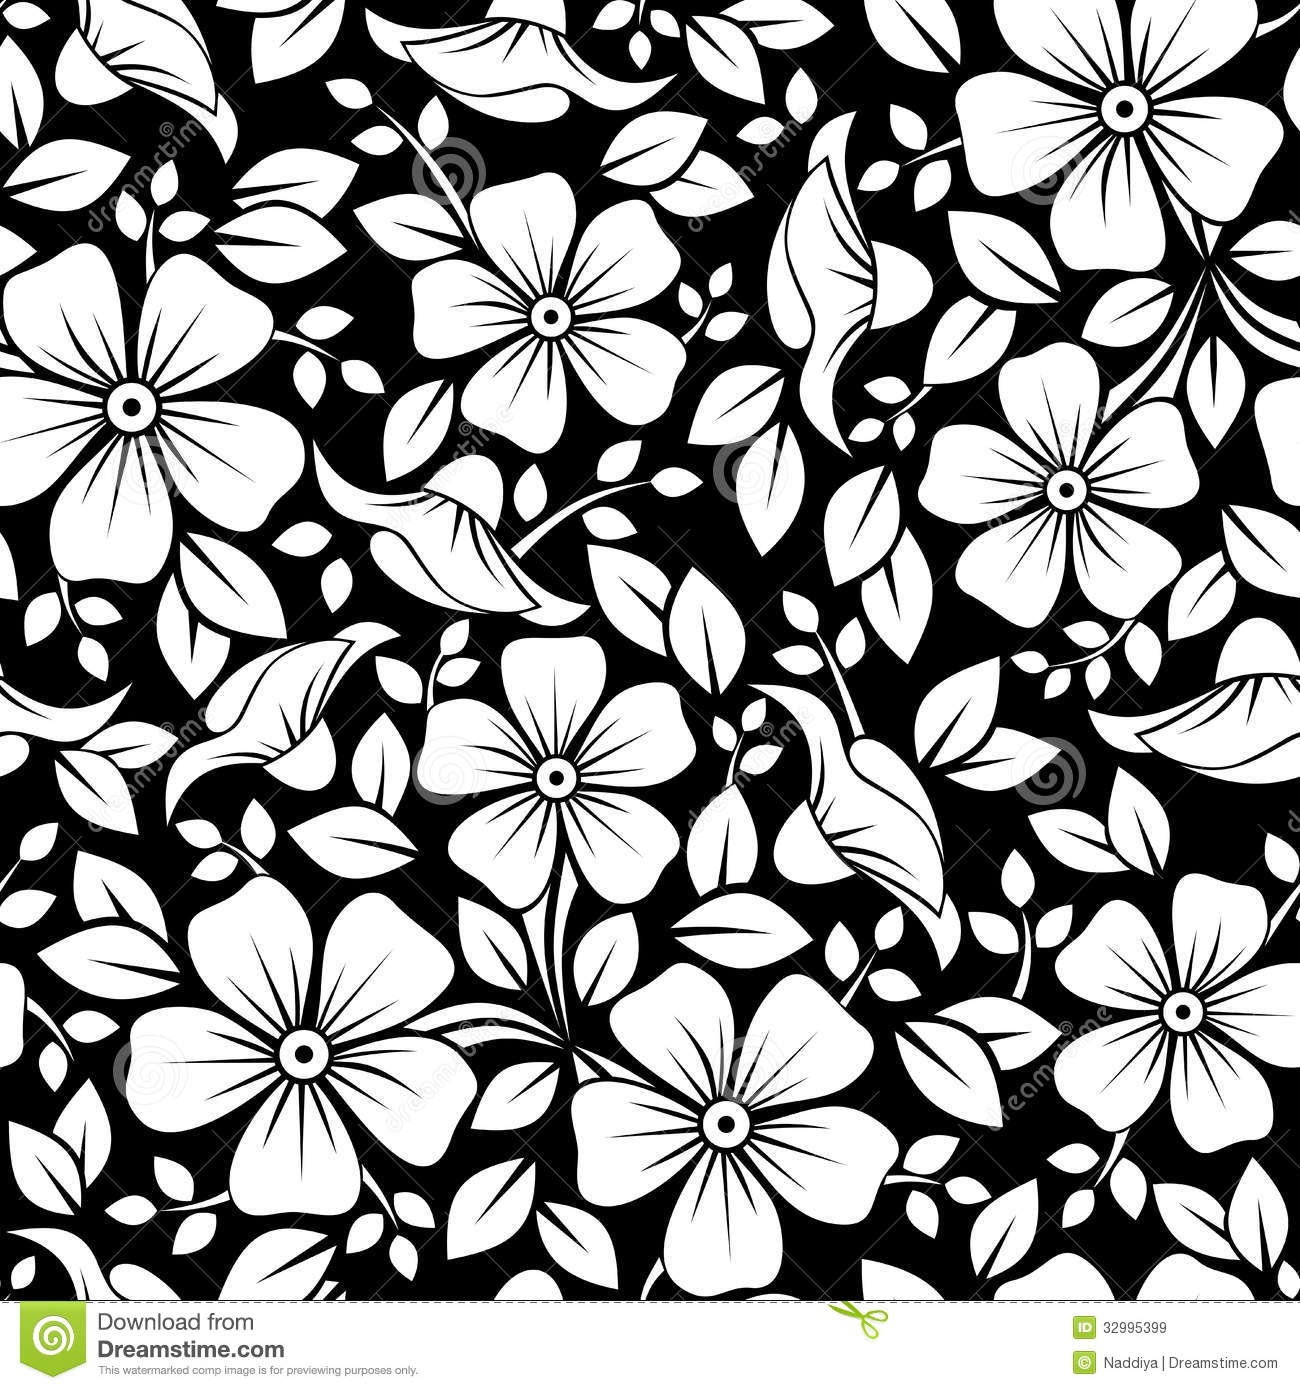 Simple Flower Patterns Black And White Border Corner